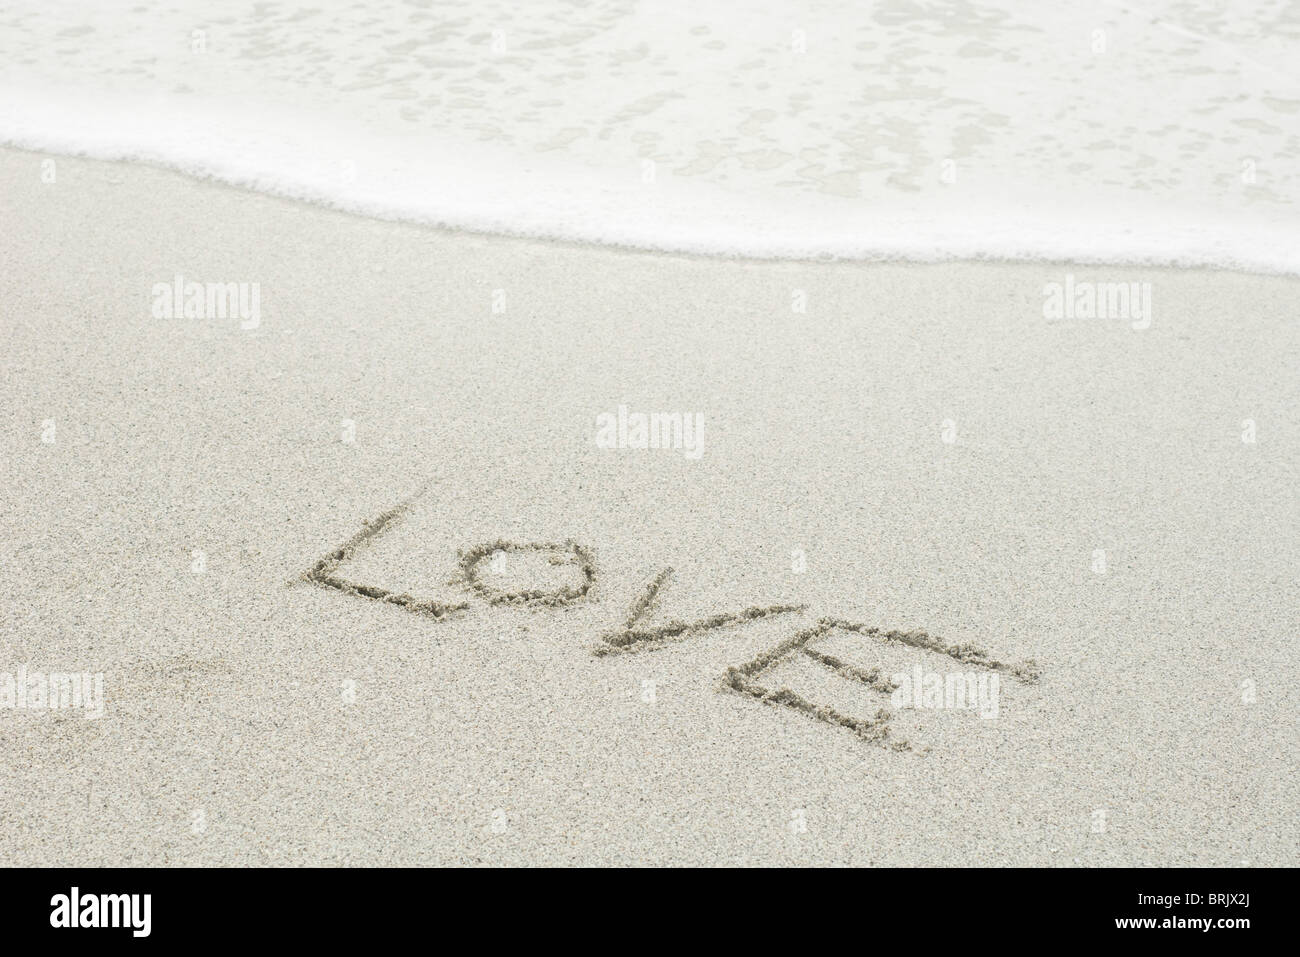 The word 'love' written in the sand at the beach - Stock Image